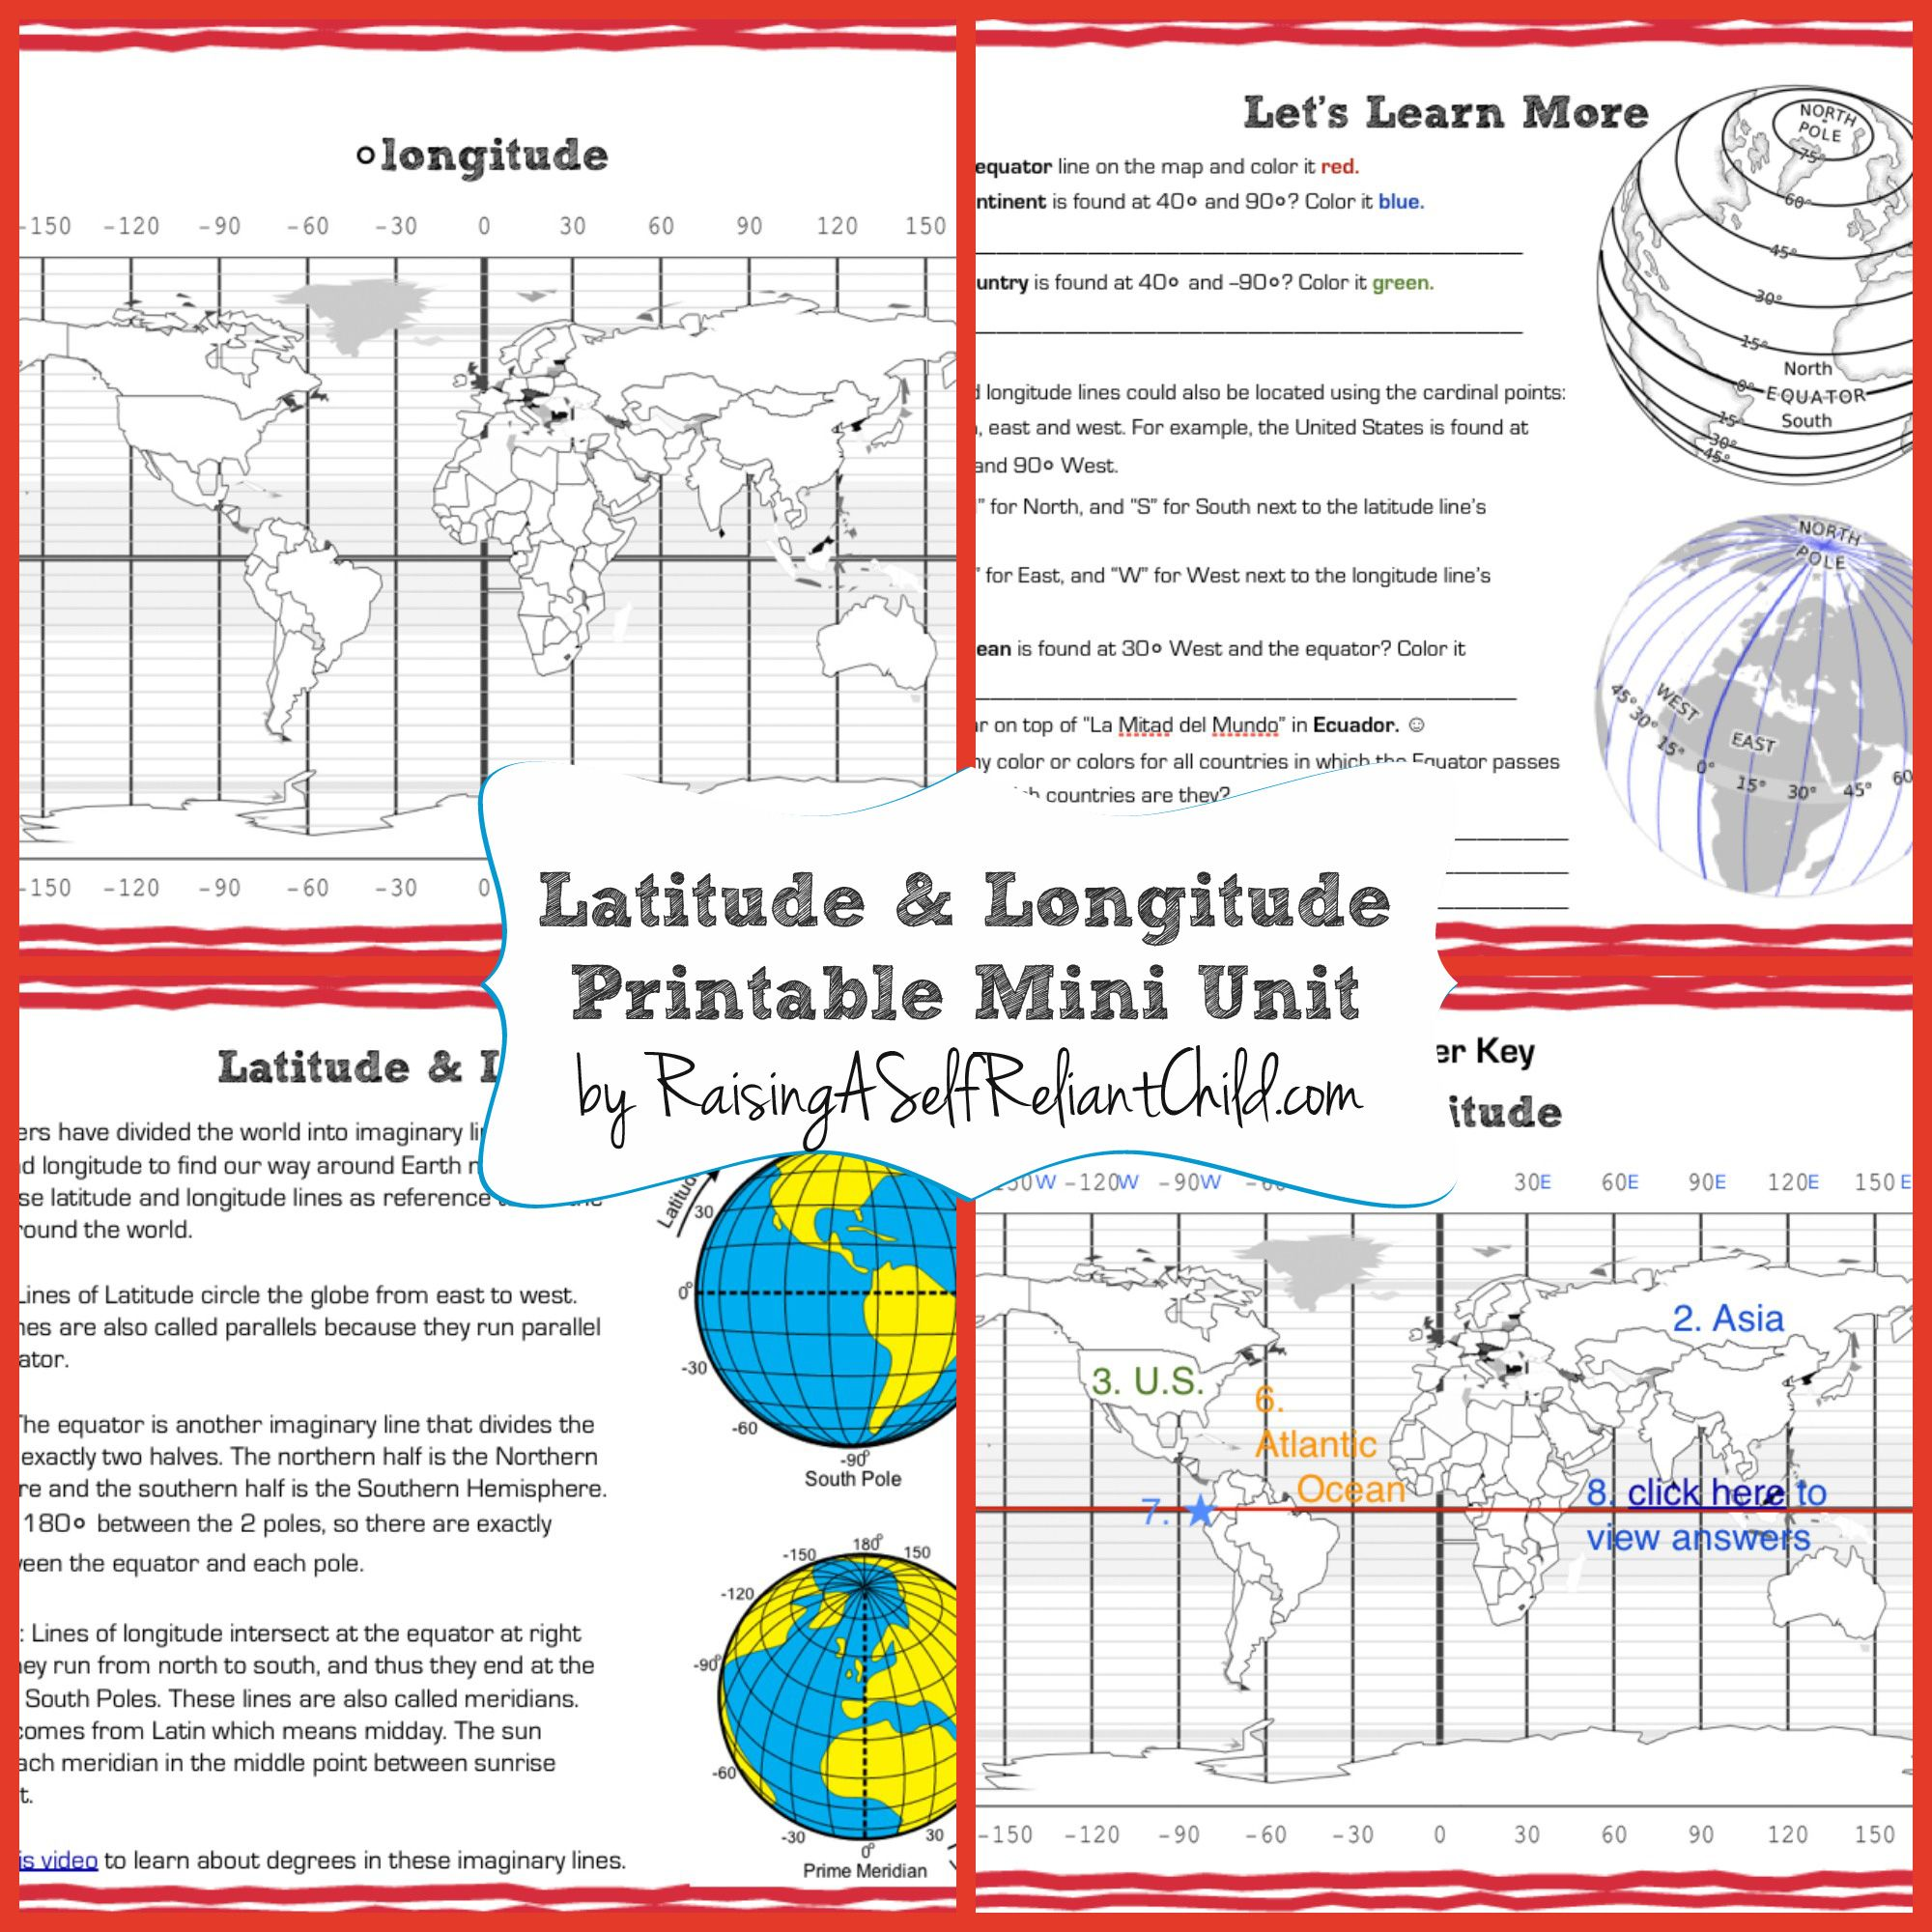 Worksheets Free Printable Latitude And Longitude Worksheets free printable mini unit latitude and longitude for kids the kids